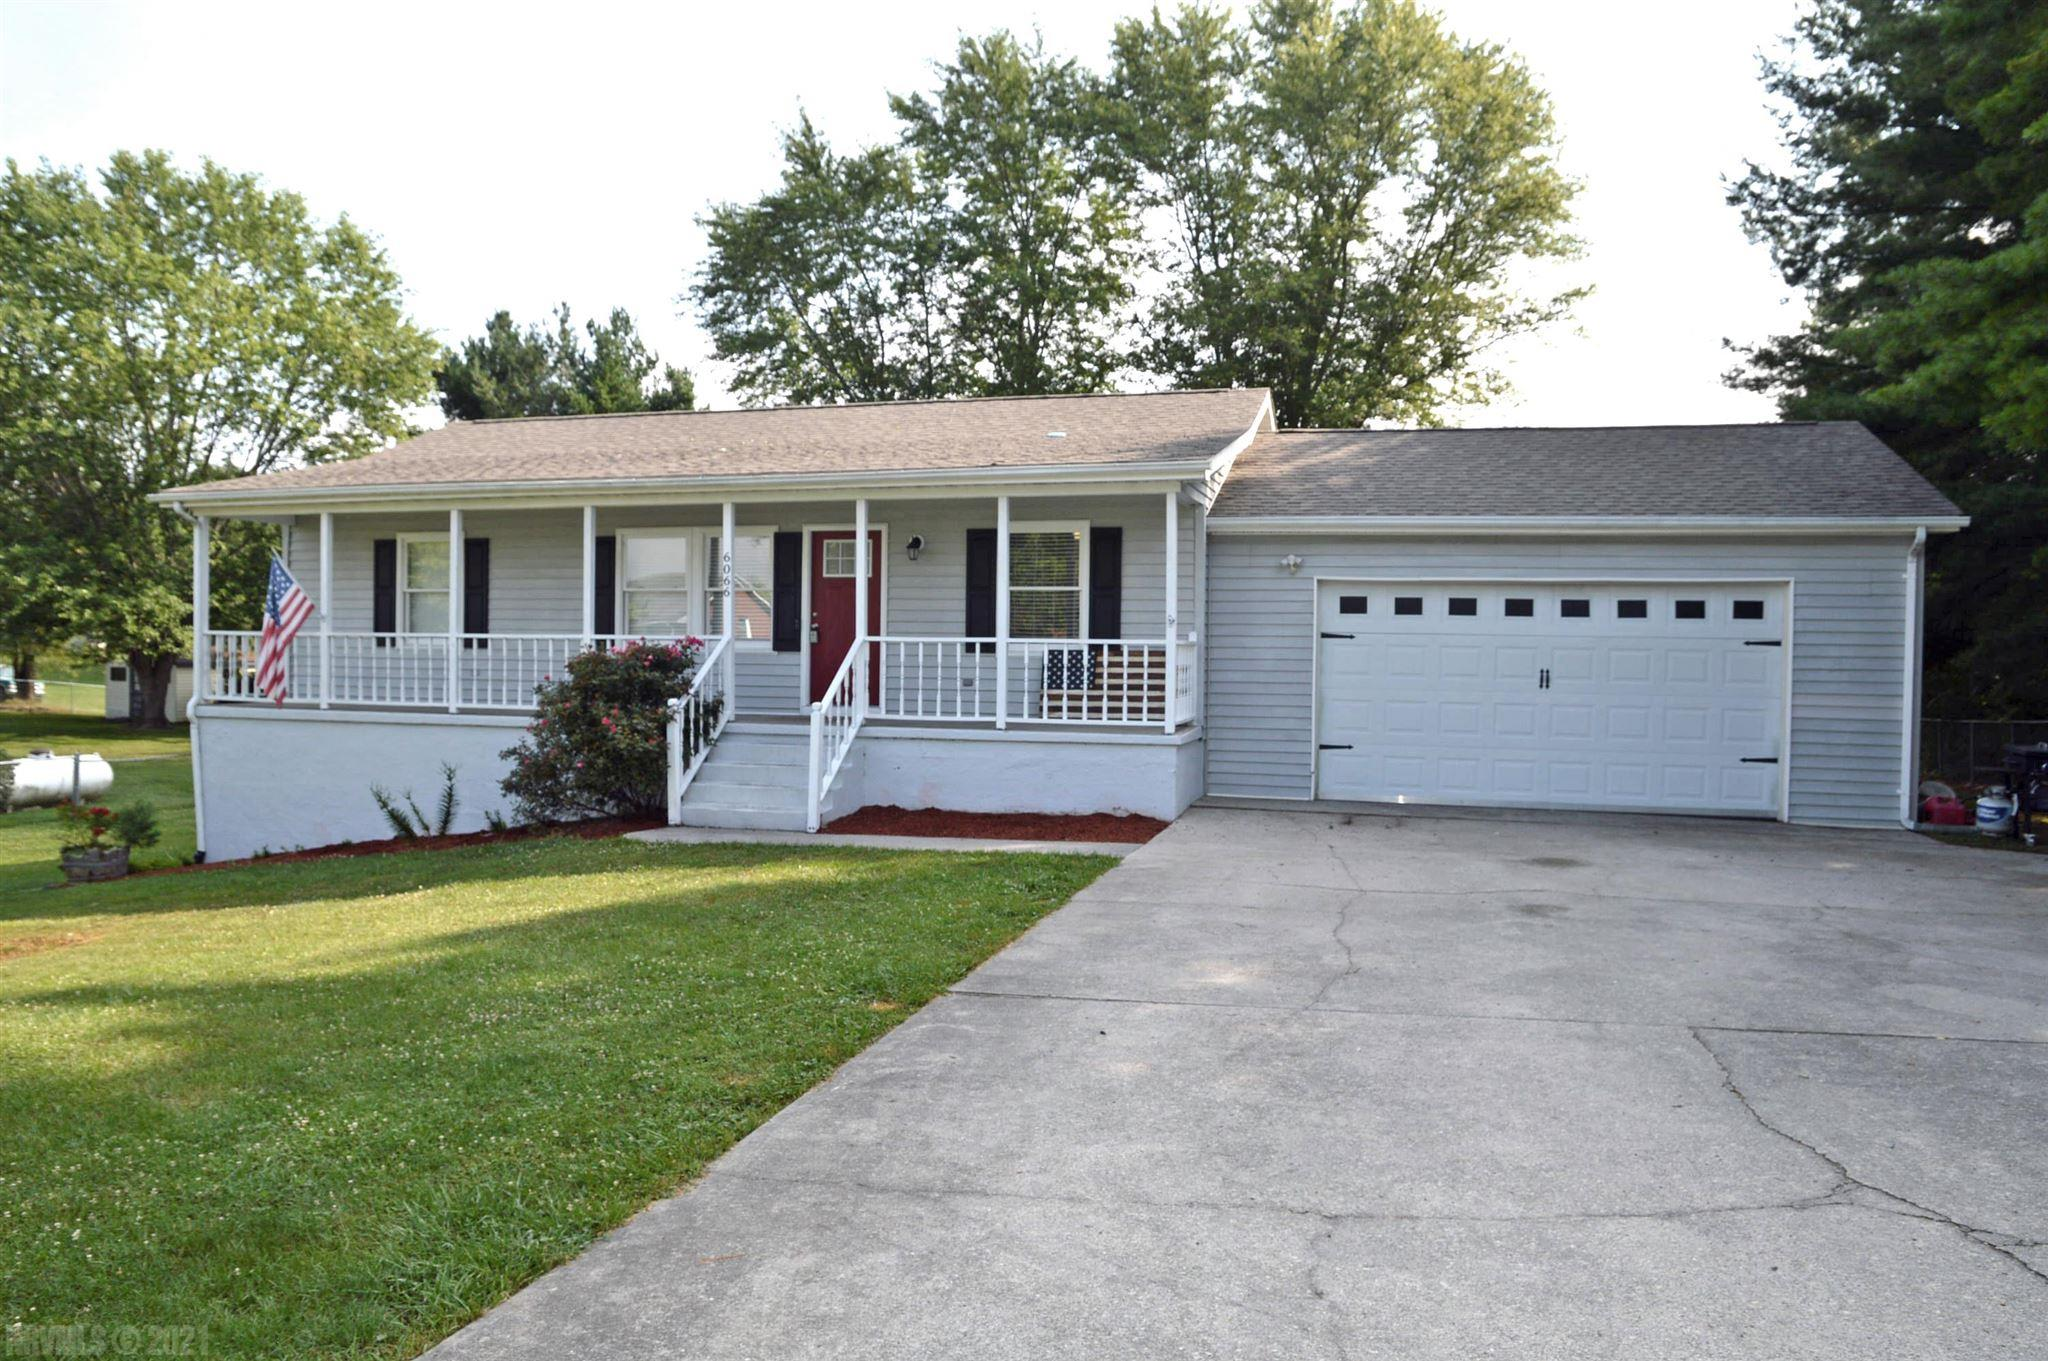 This beautiful, recently remodeled 3BR/3BA home features a full finished basement.  Some of the improvements are white kitchen cabinets, granite countertops, master bath with tile shower, and LVP floors throughout main level.  The huge deck overlooks the level backyard with storage shed.  Main level laundry with W/D included, covered front porch, oversized double attached garage and fenced yard round out the amenities.  New HVAC and roof in 2019. Make your appointment soon!